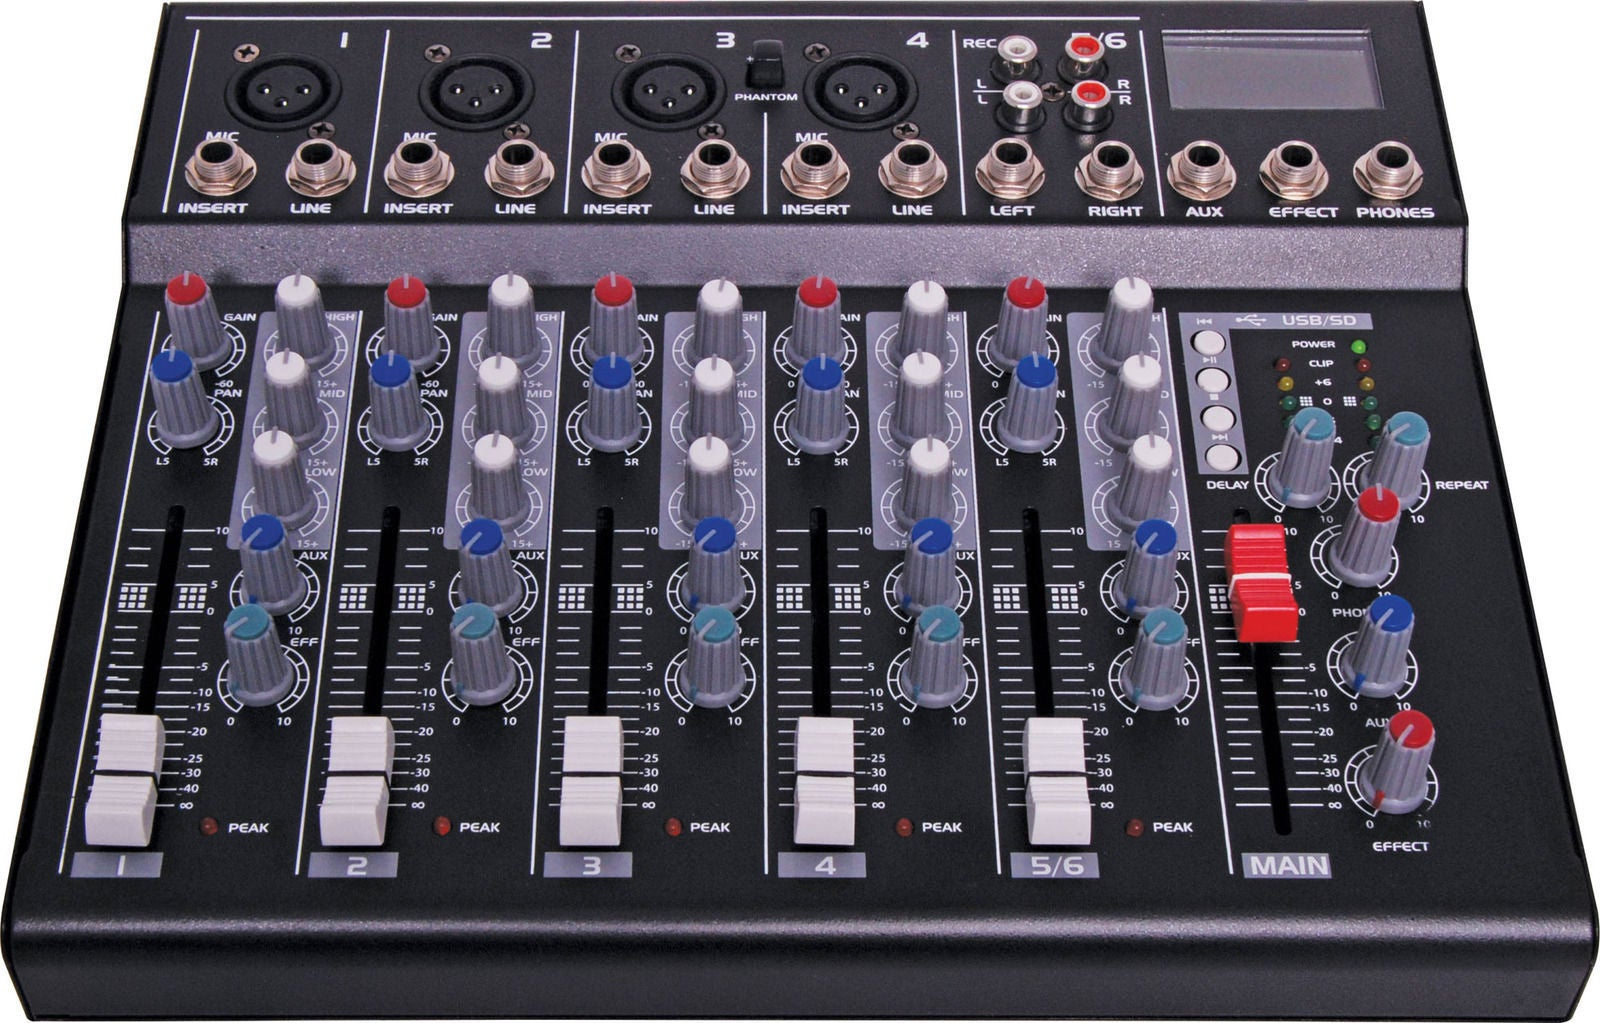 Redback Professional Audio 6 Channel Mixing Desk With USB Playback